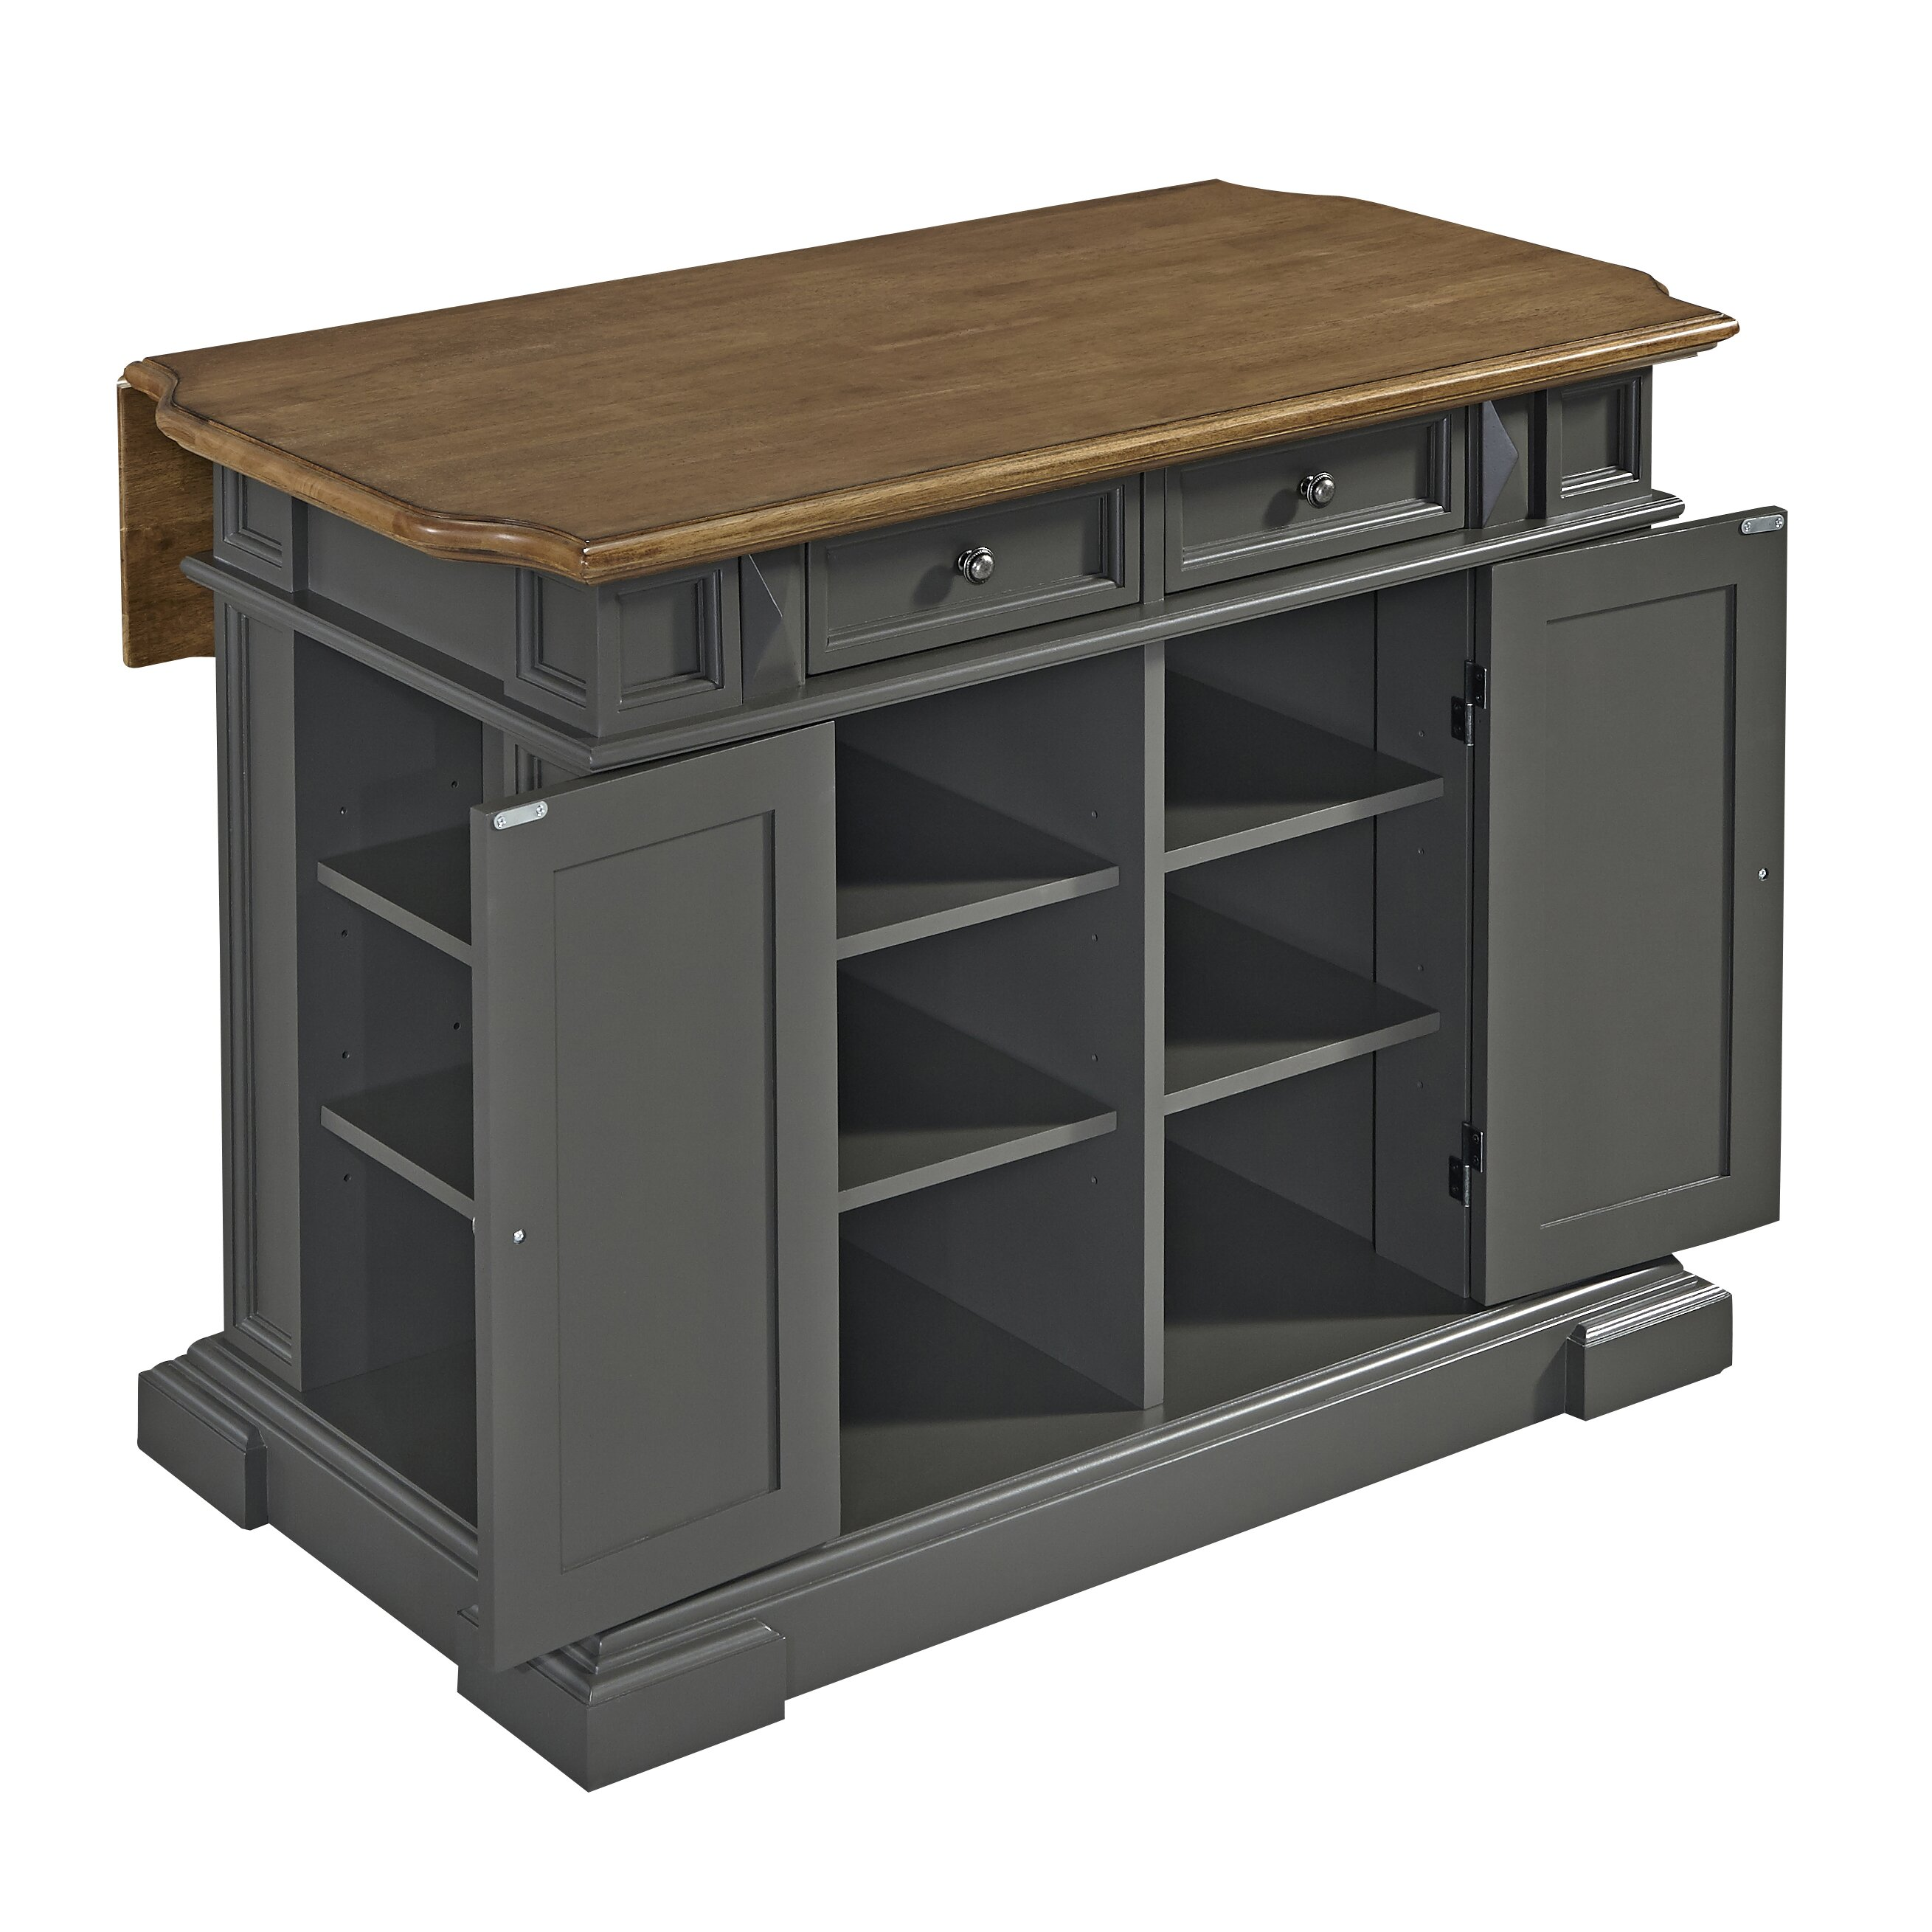 home styles americana kitchen island wayfair home styles americana kitchen island amp reviews wayfair